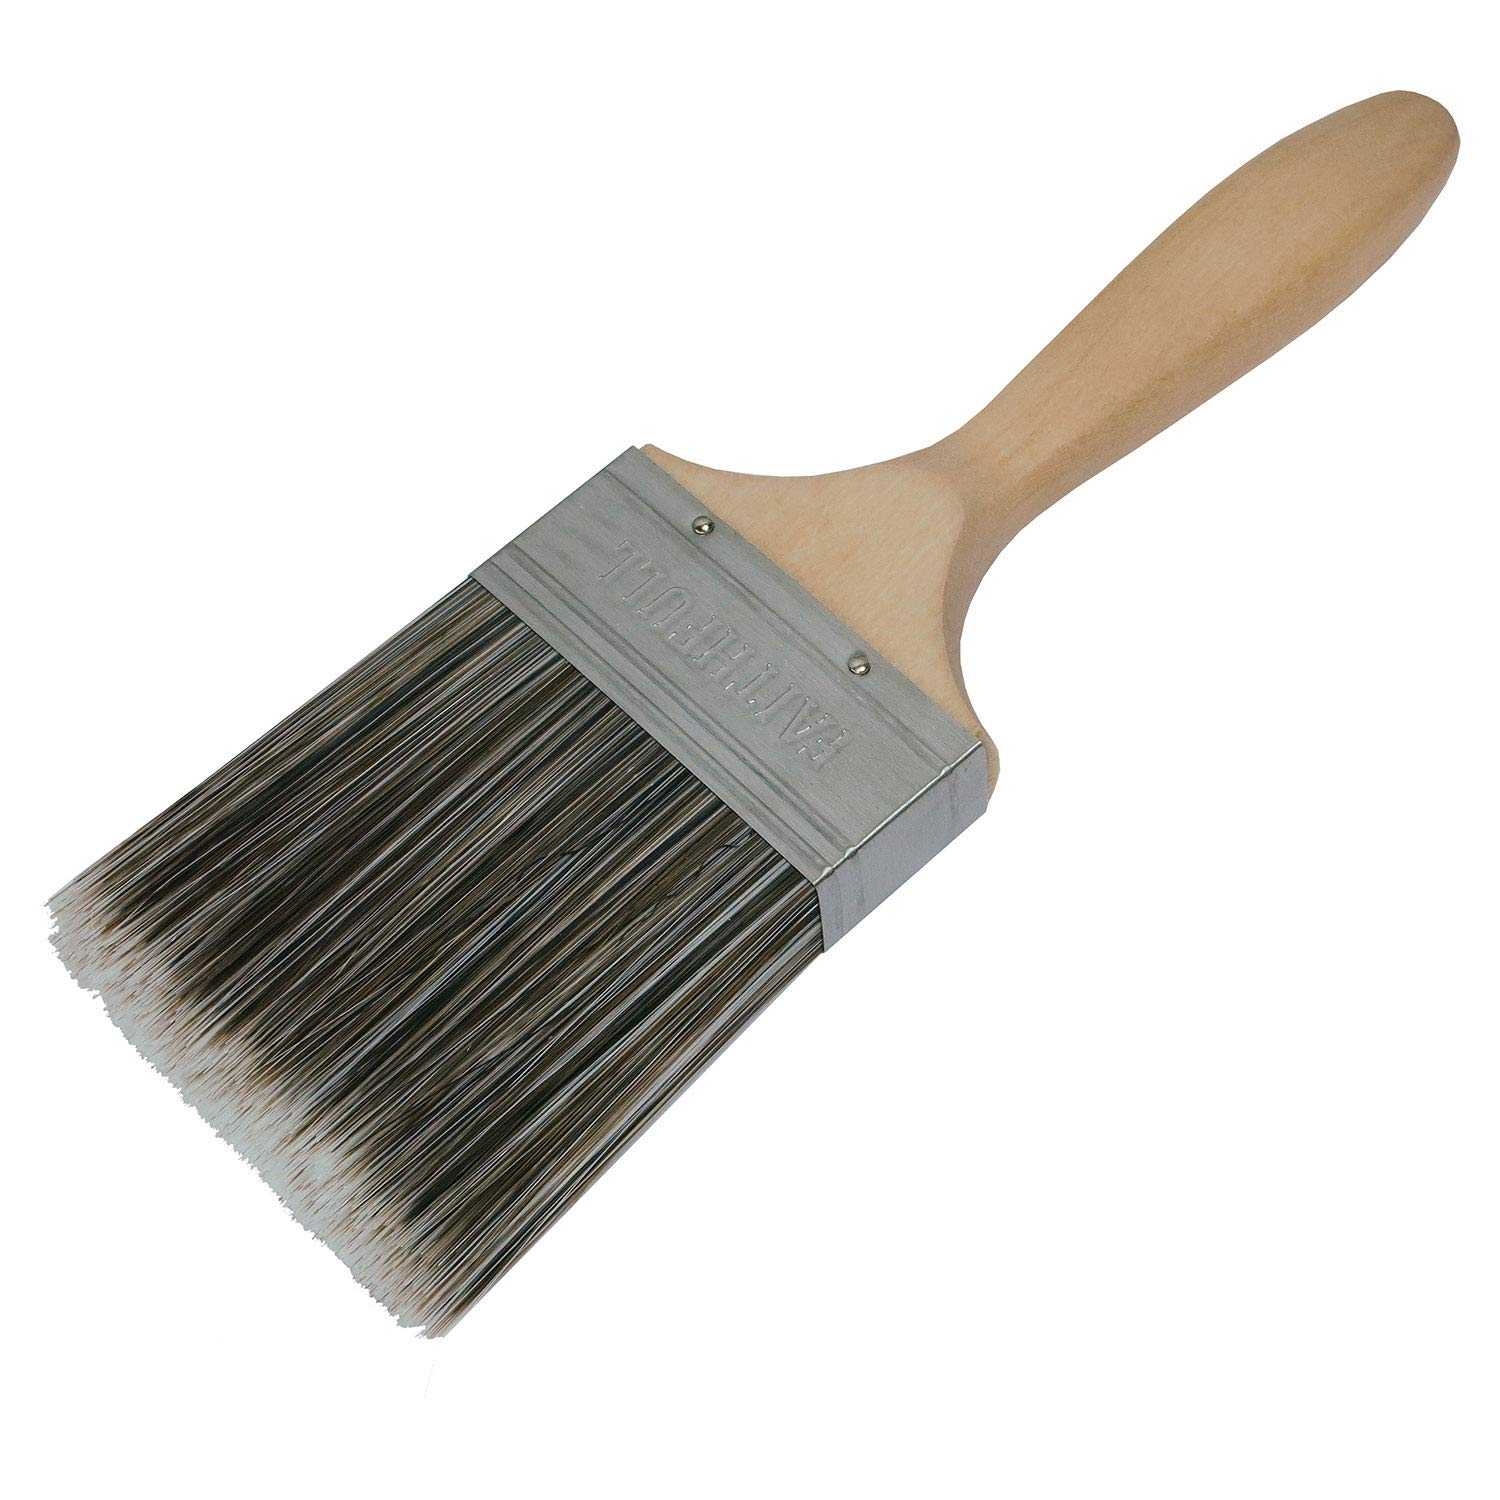 3in Tradesman Synthetic Paint Brush 75mm FAIPBT3 - Painting Tools